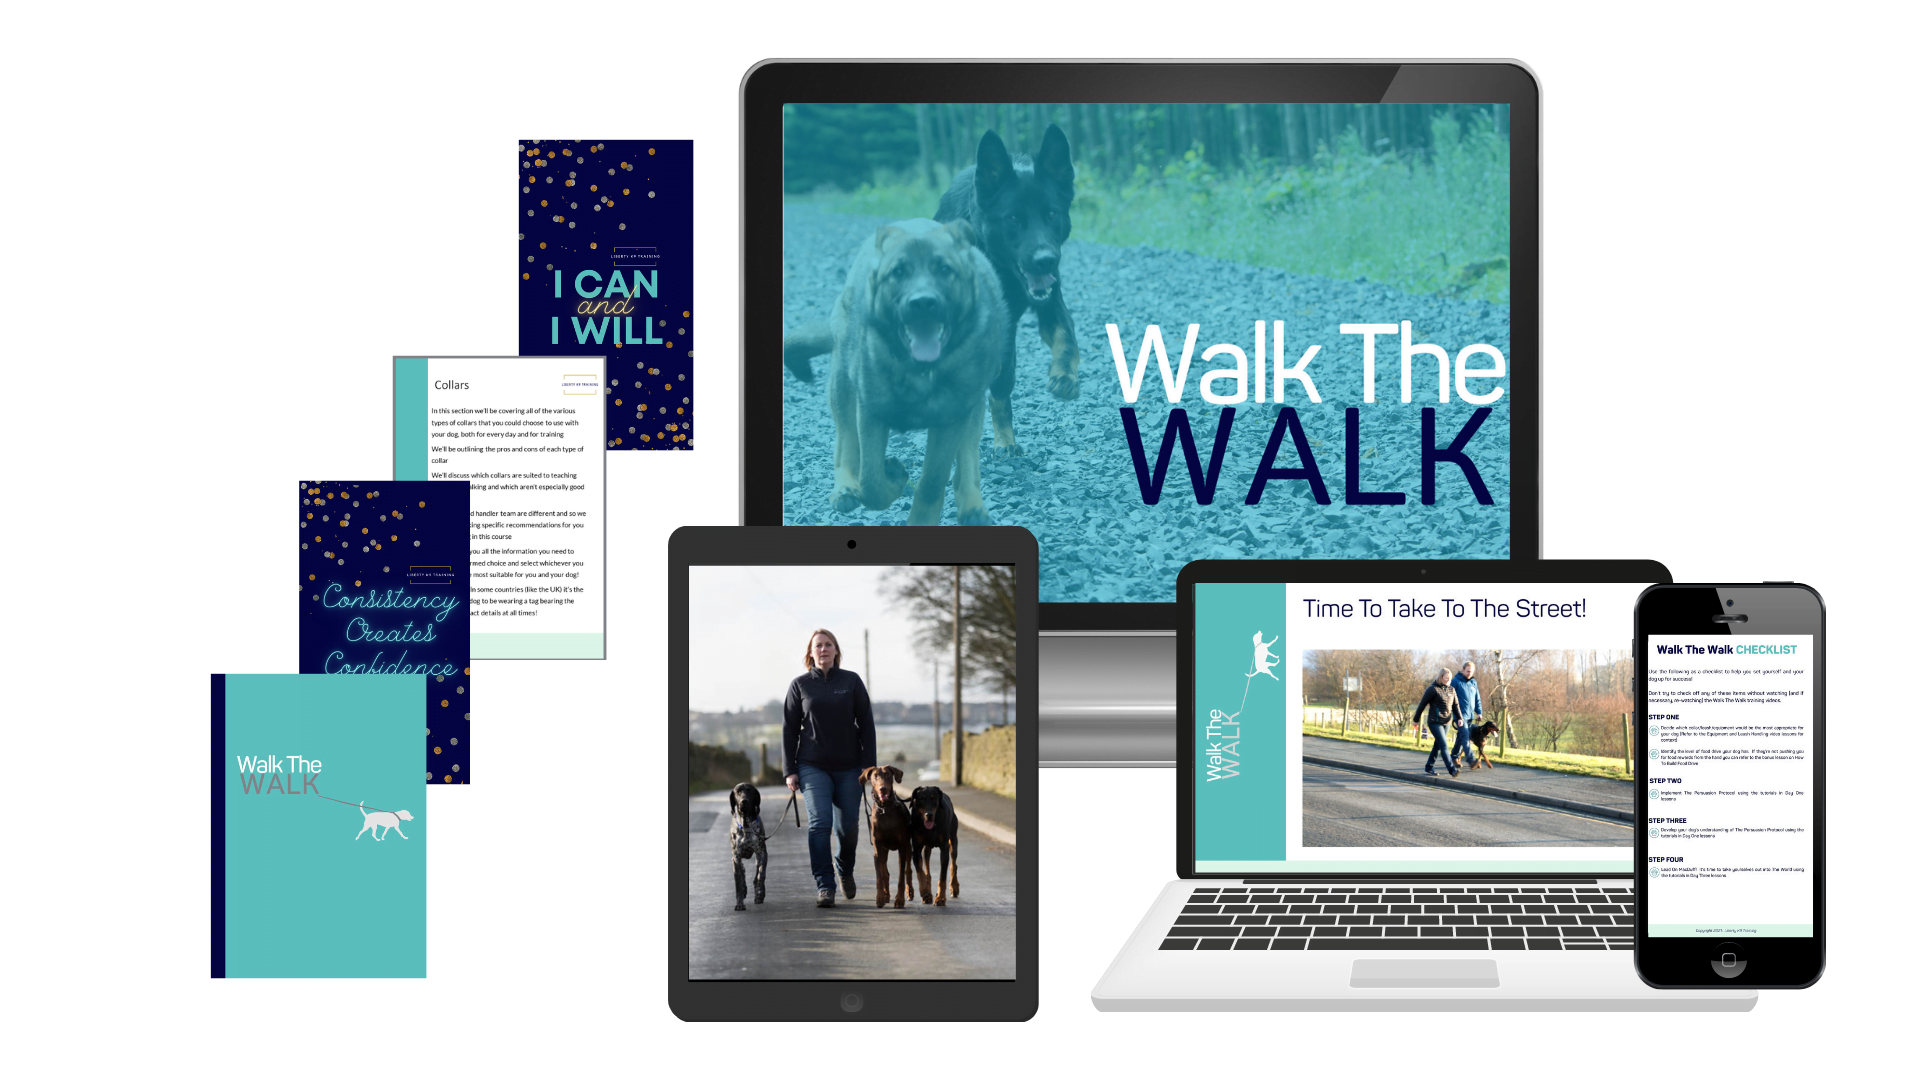 Teach Your Dog To Walk On A Loose Lead In One Weekend